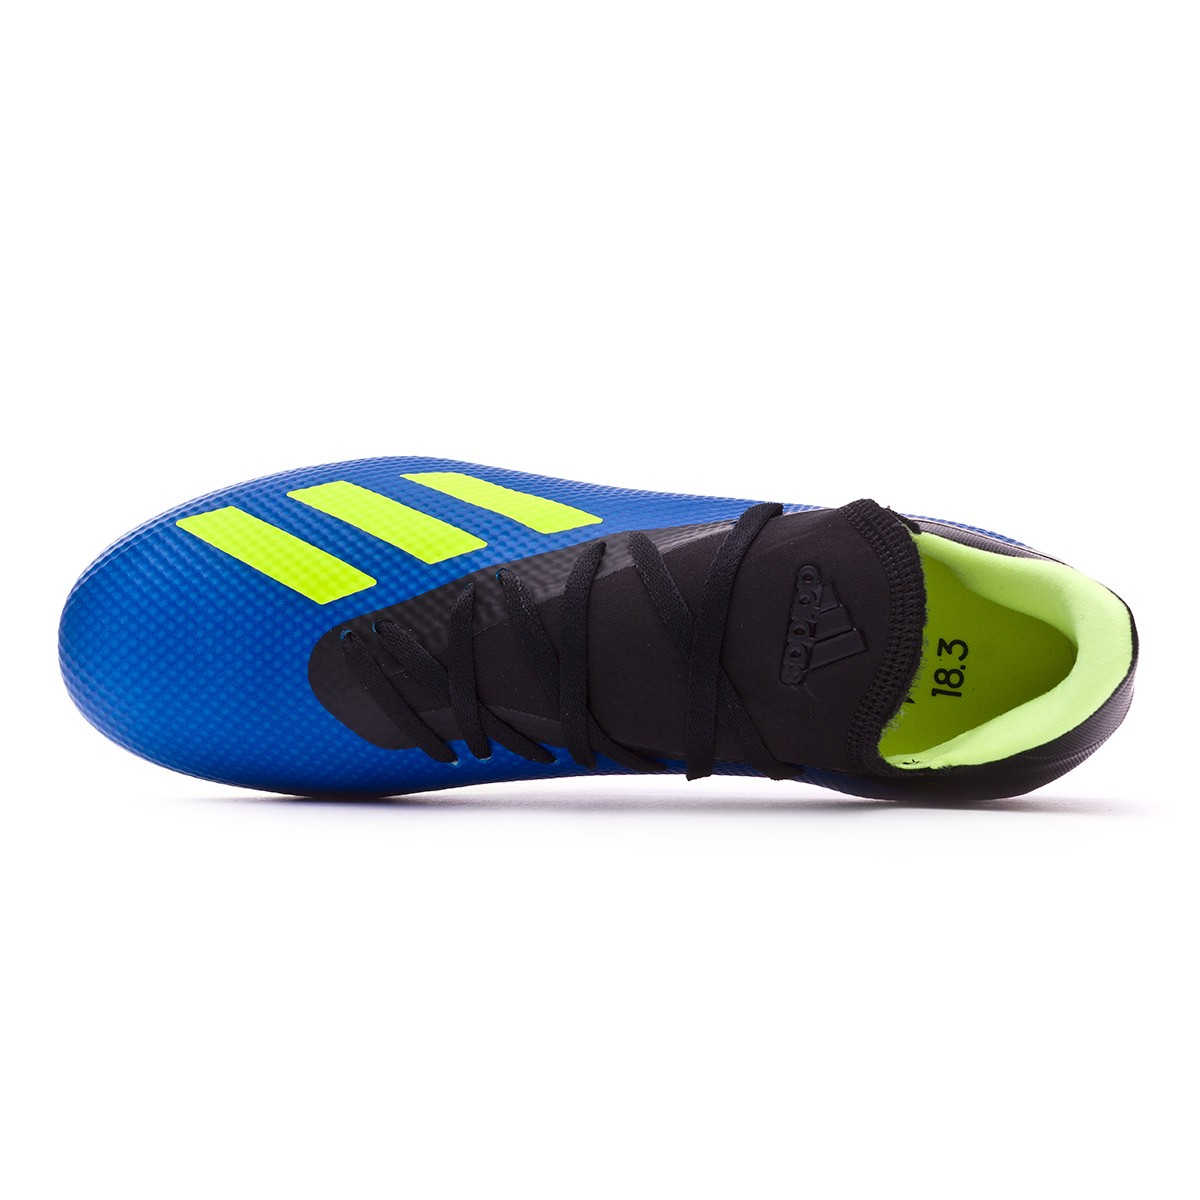 new concept d617d e79cb Scarpe adidas X 18.3 FG Foot blue-Solar yellow-Black - Negozio di calcio  Fútbol Emotion